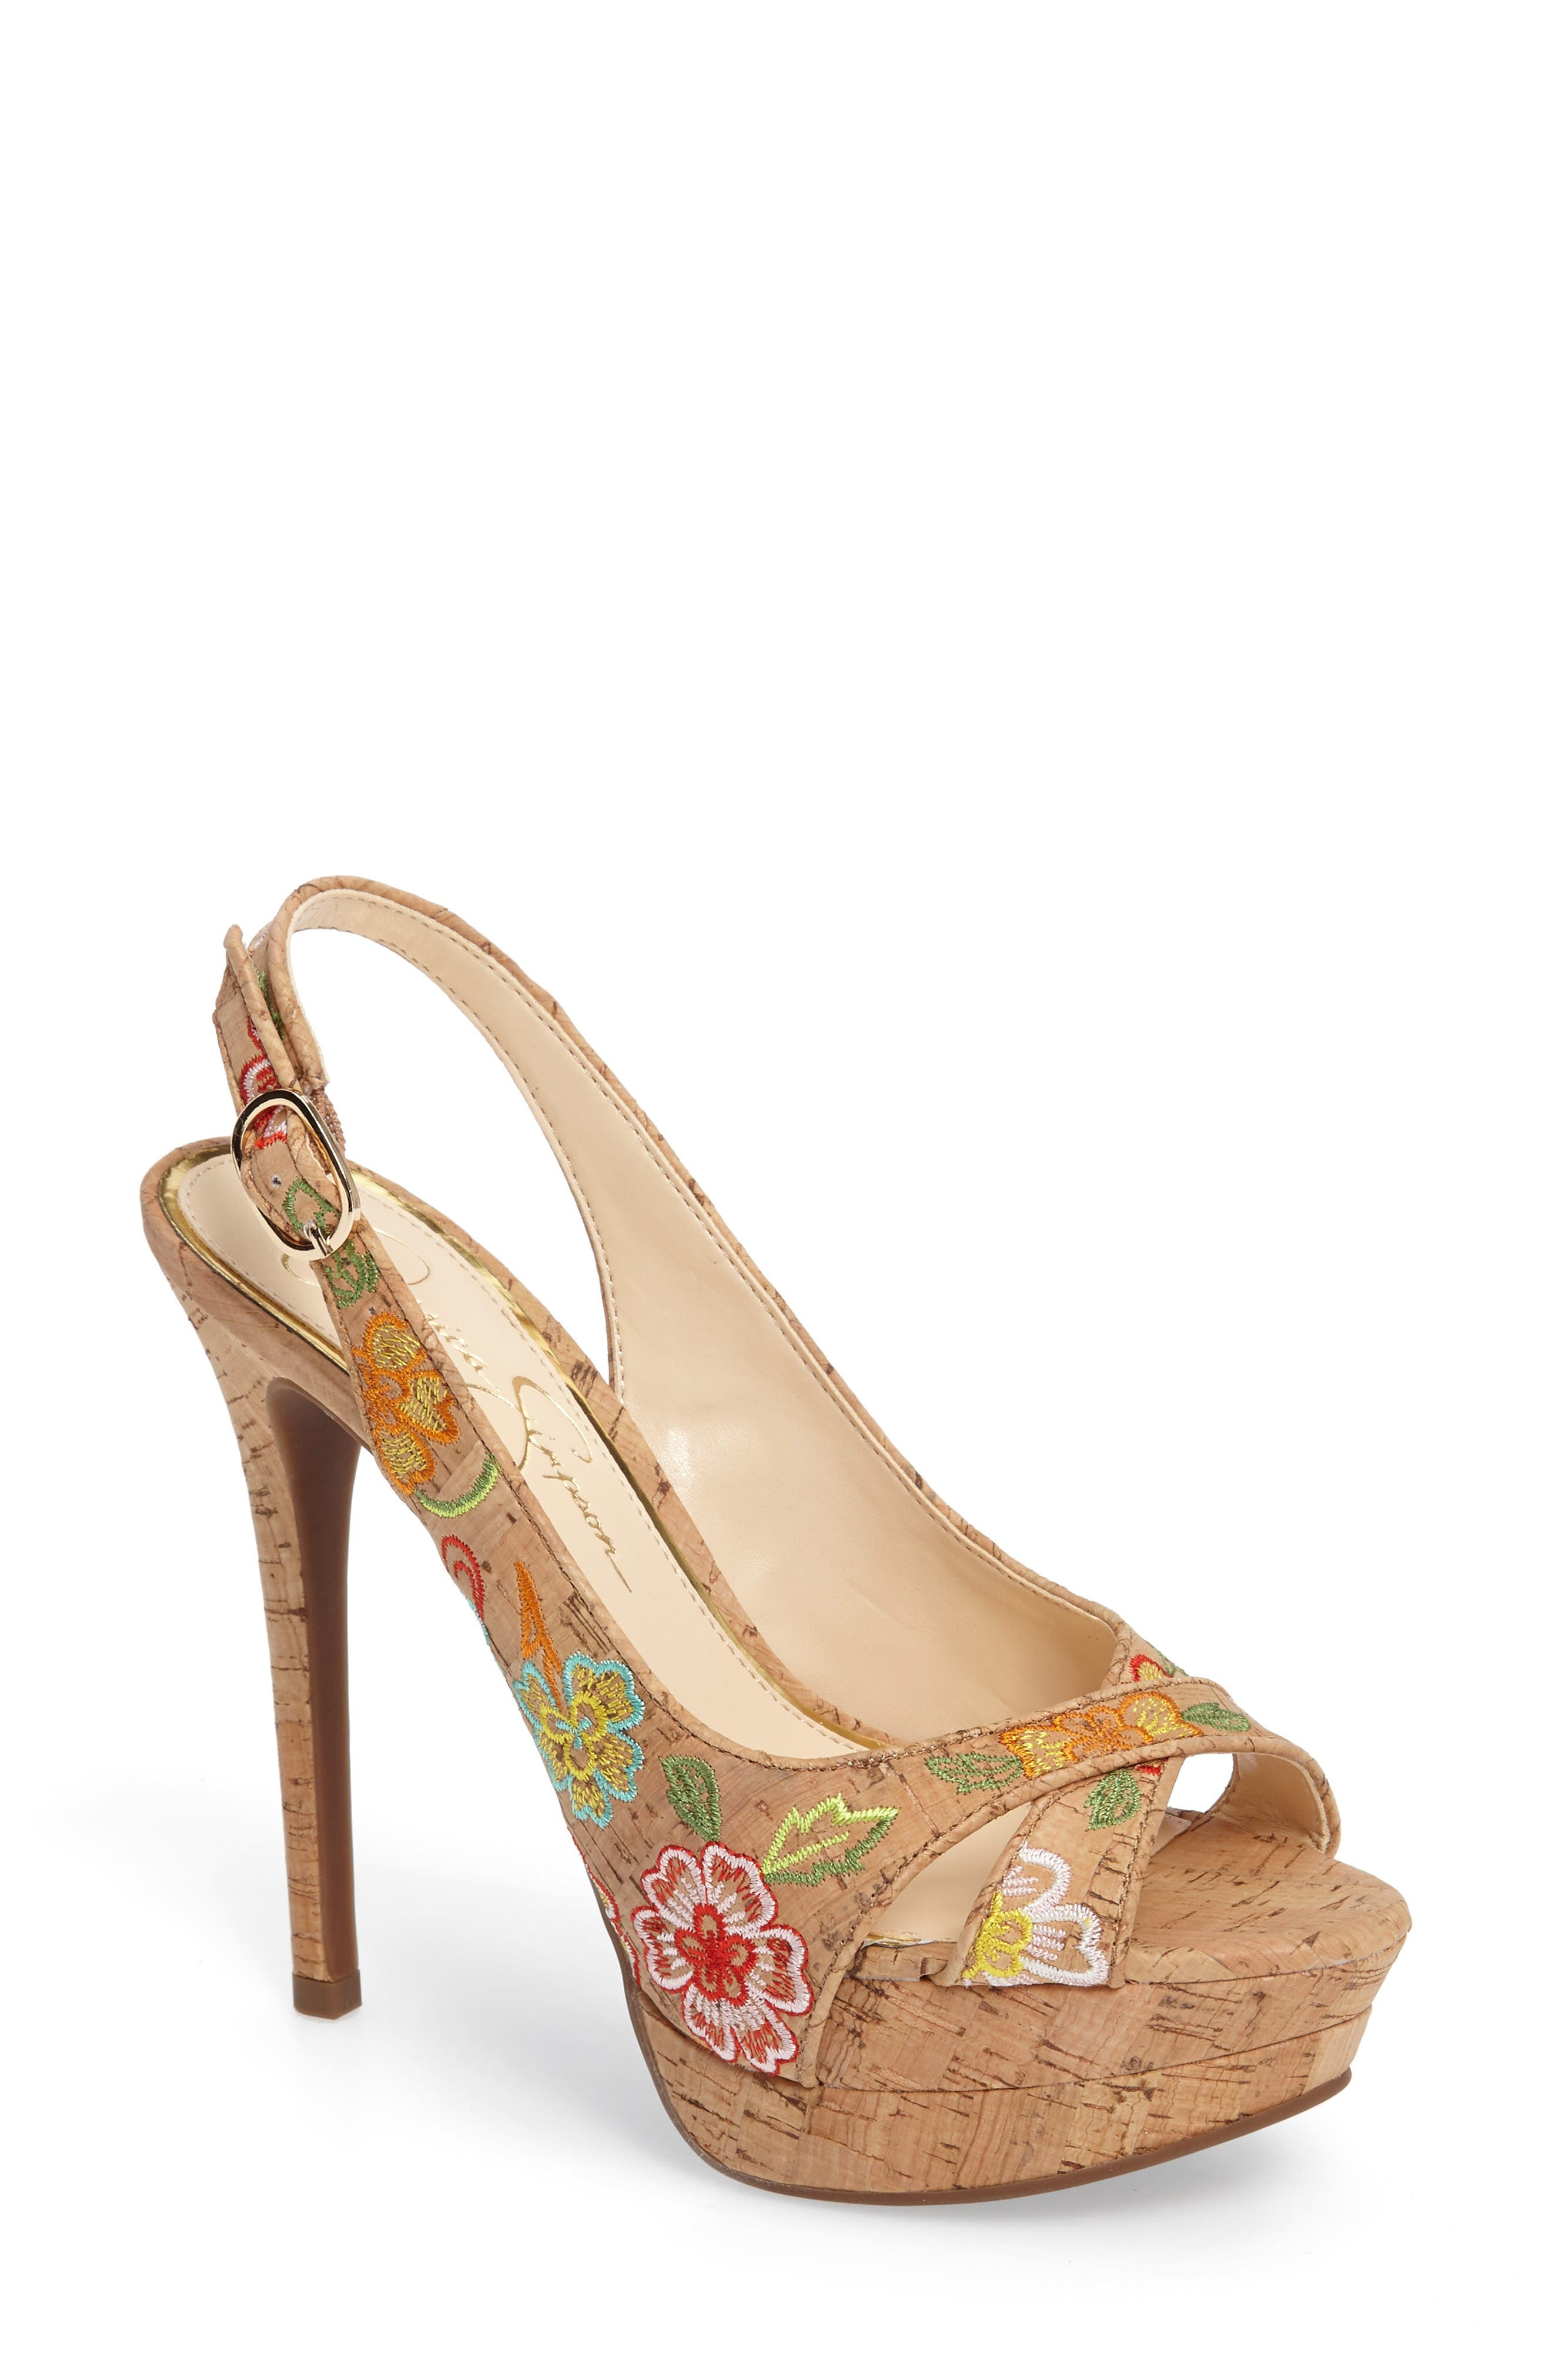 Alternate Image 1 Selected - Jessica Simpson Willey Platform Sandal (Women)